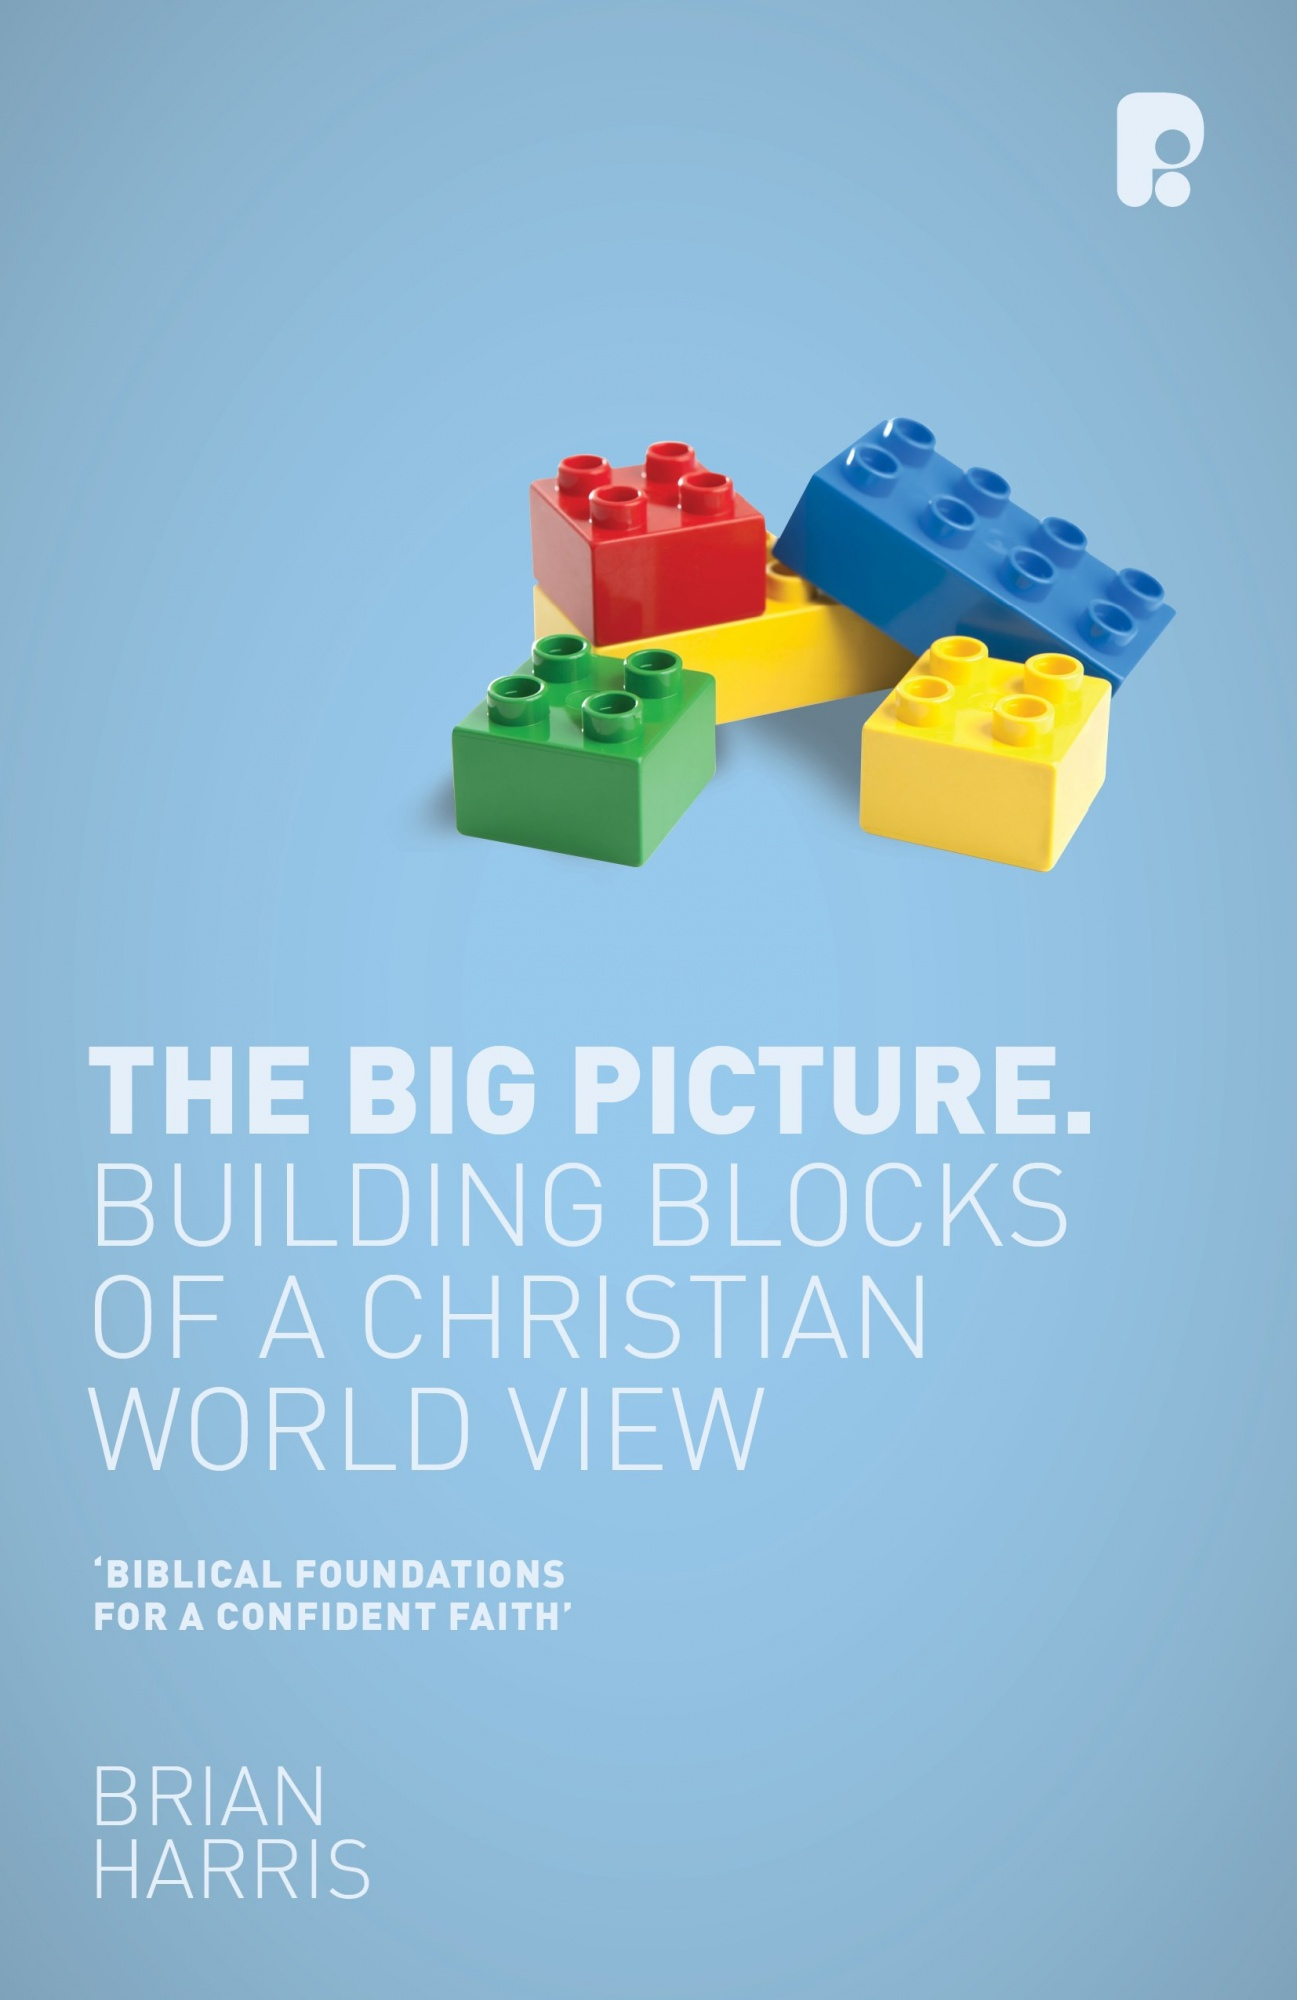 Big PictureBuilding Blocks of a Christian World View by Brian Harris, ISBN: 9781842278567